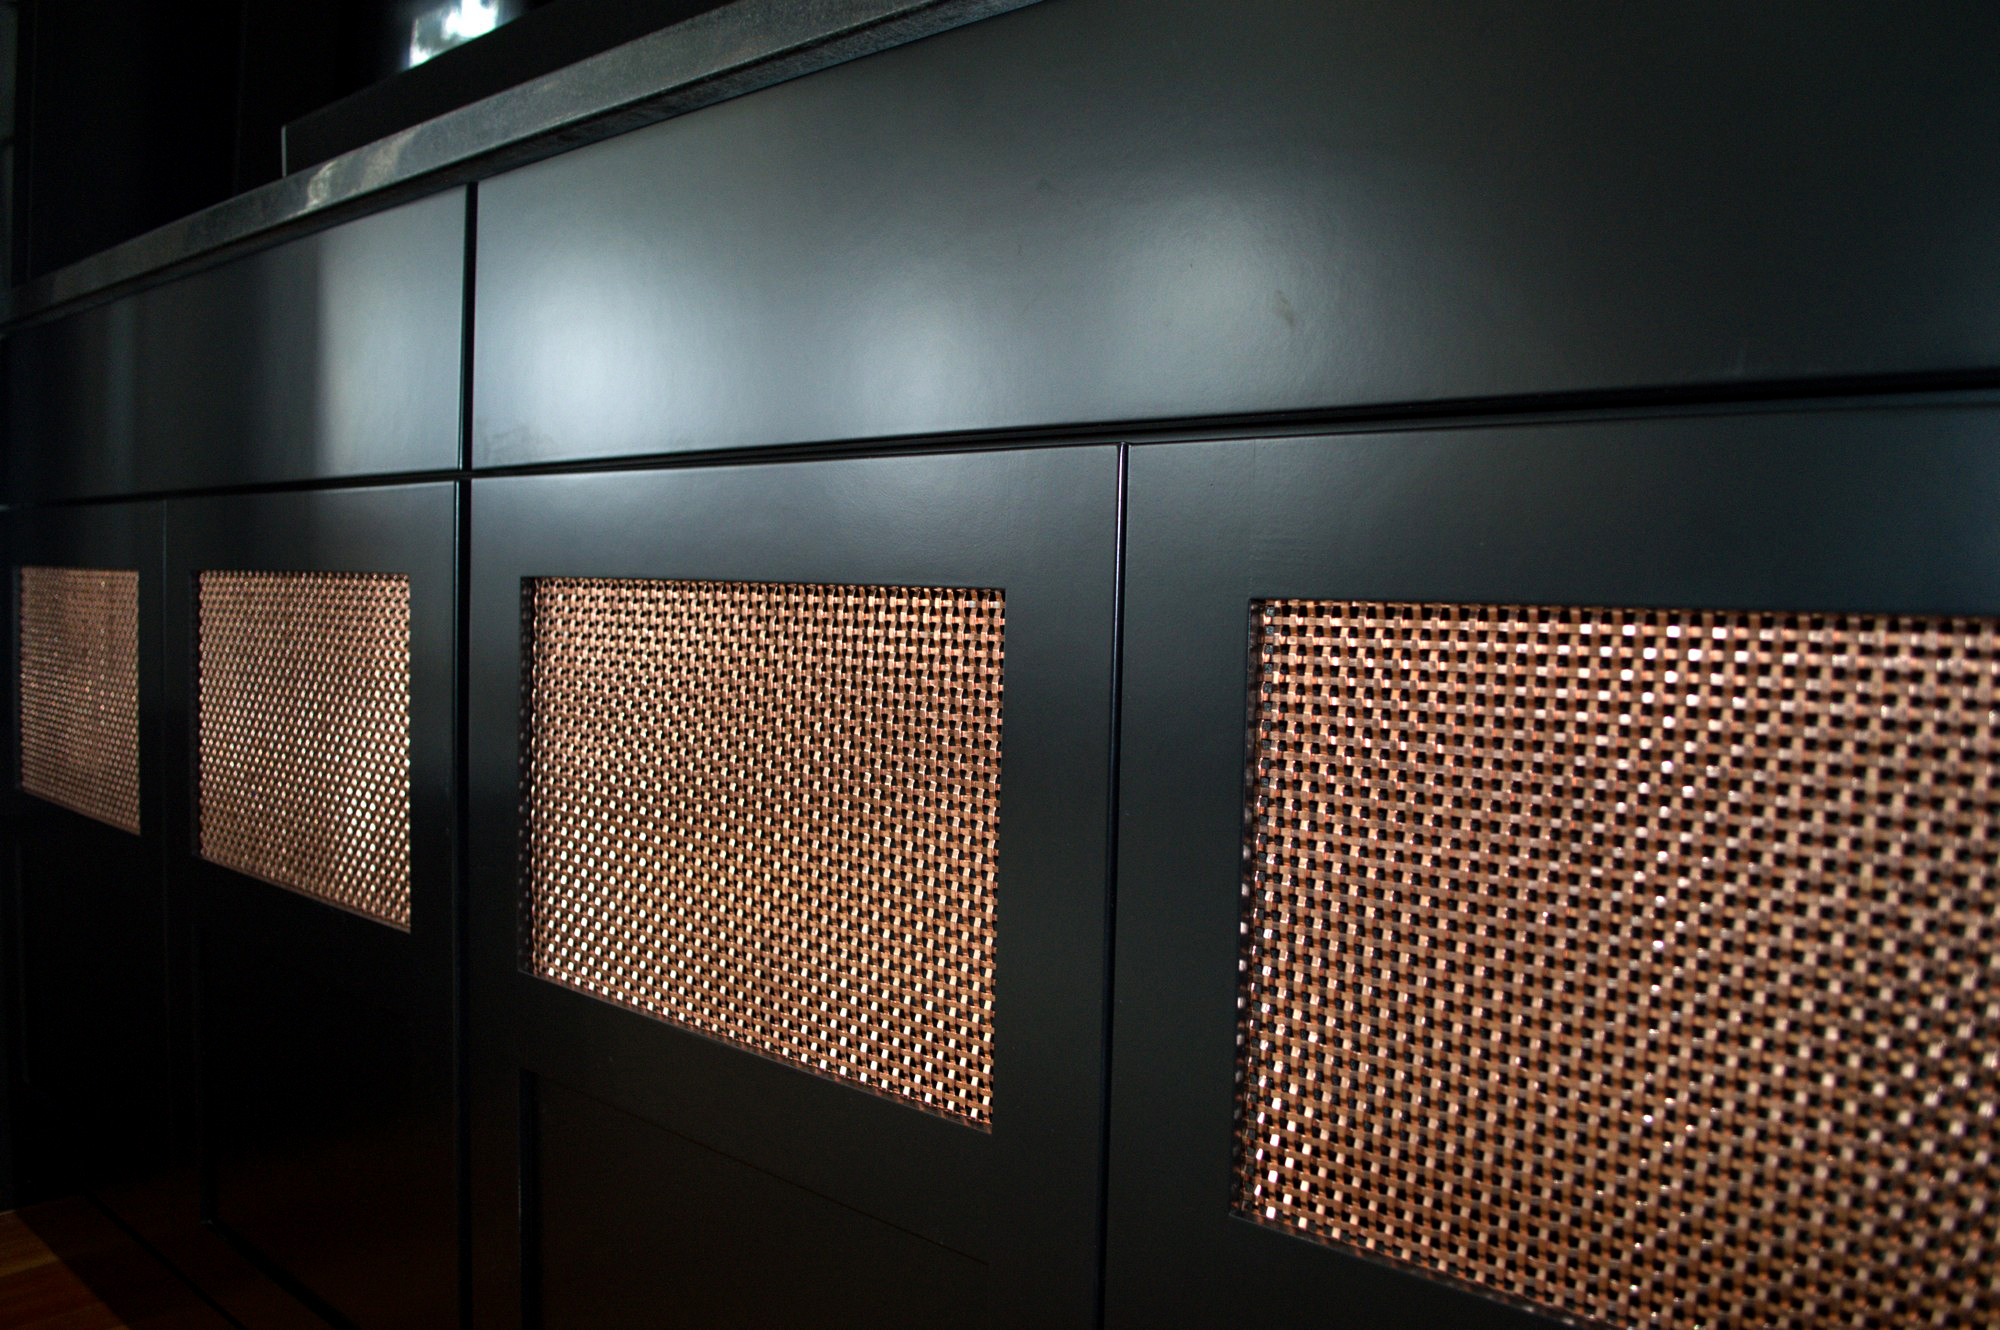 Copper S-16 wire mesh panels in this entertainment center add a modern flare to this rustic home.